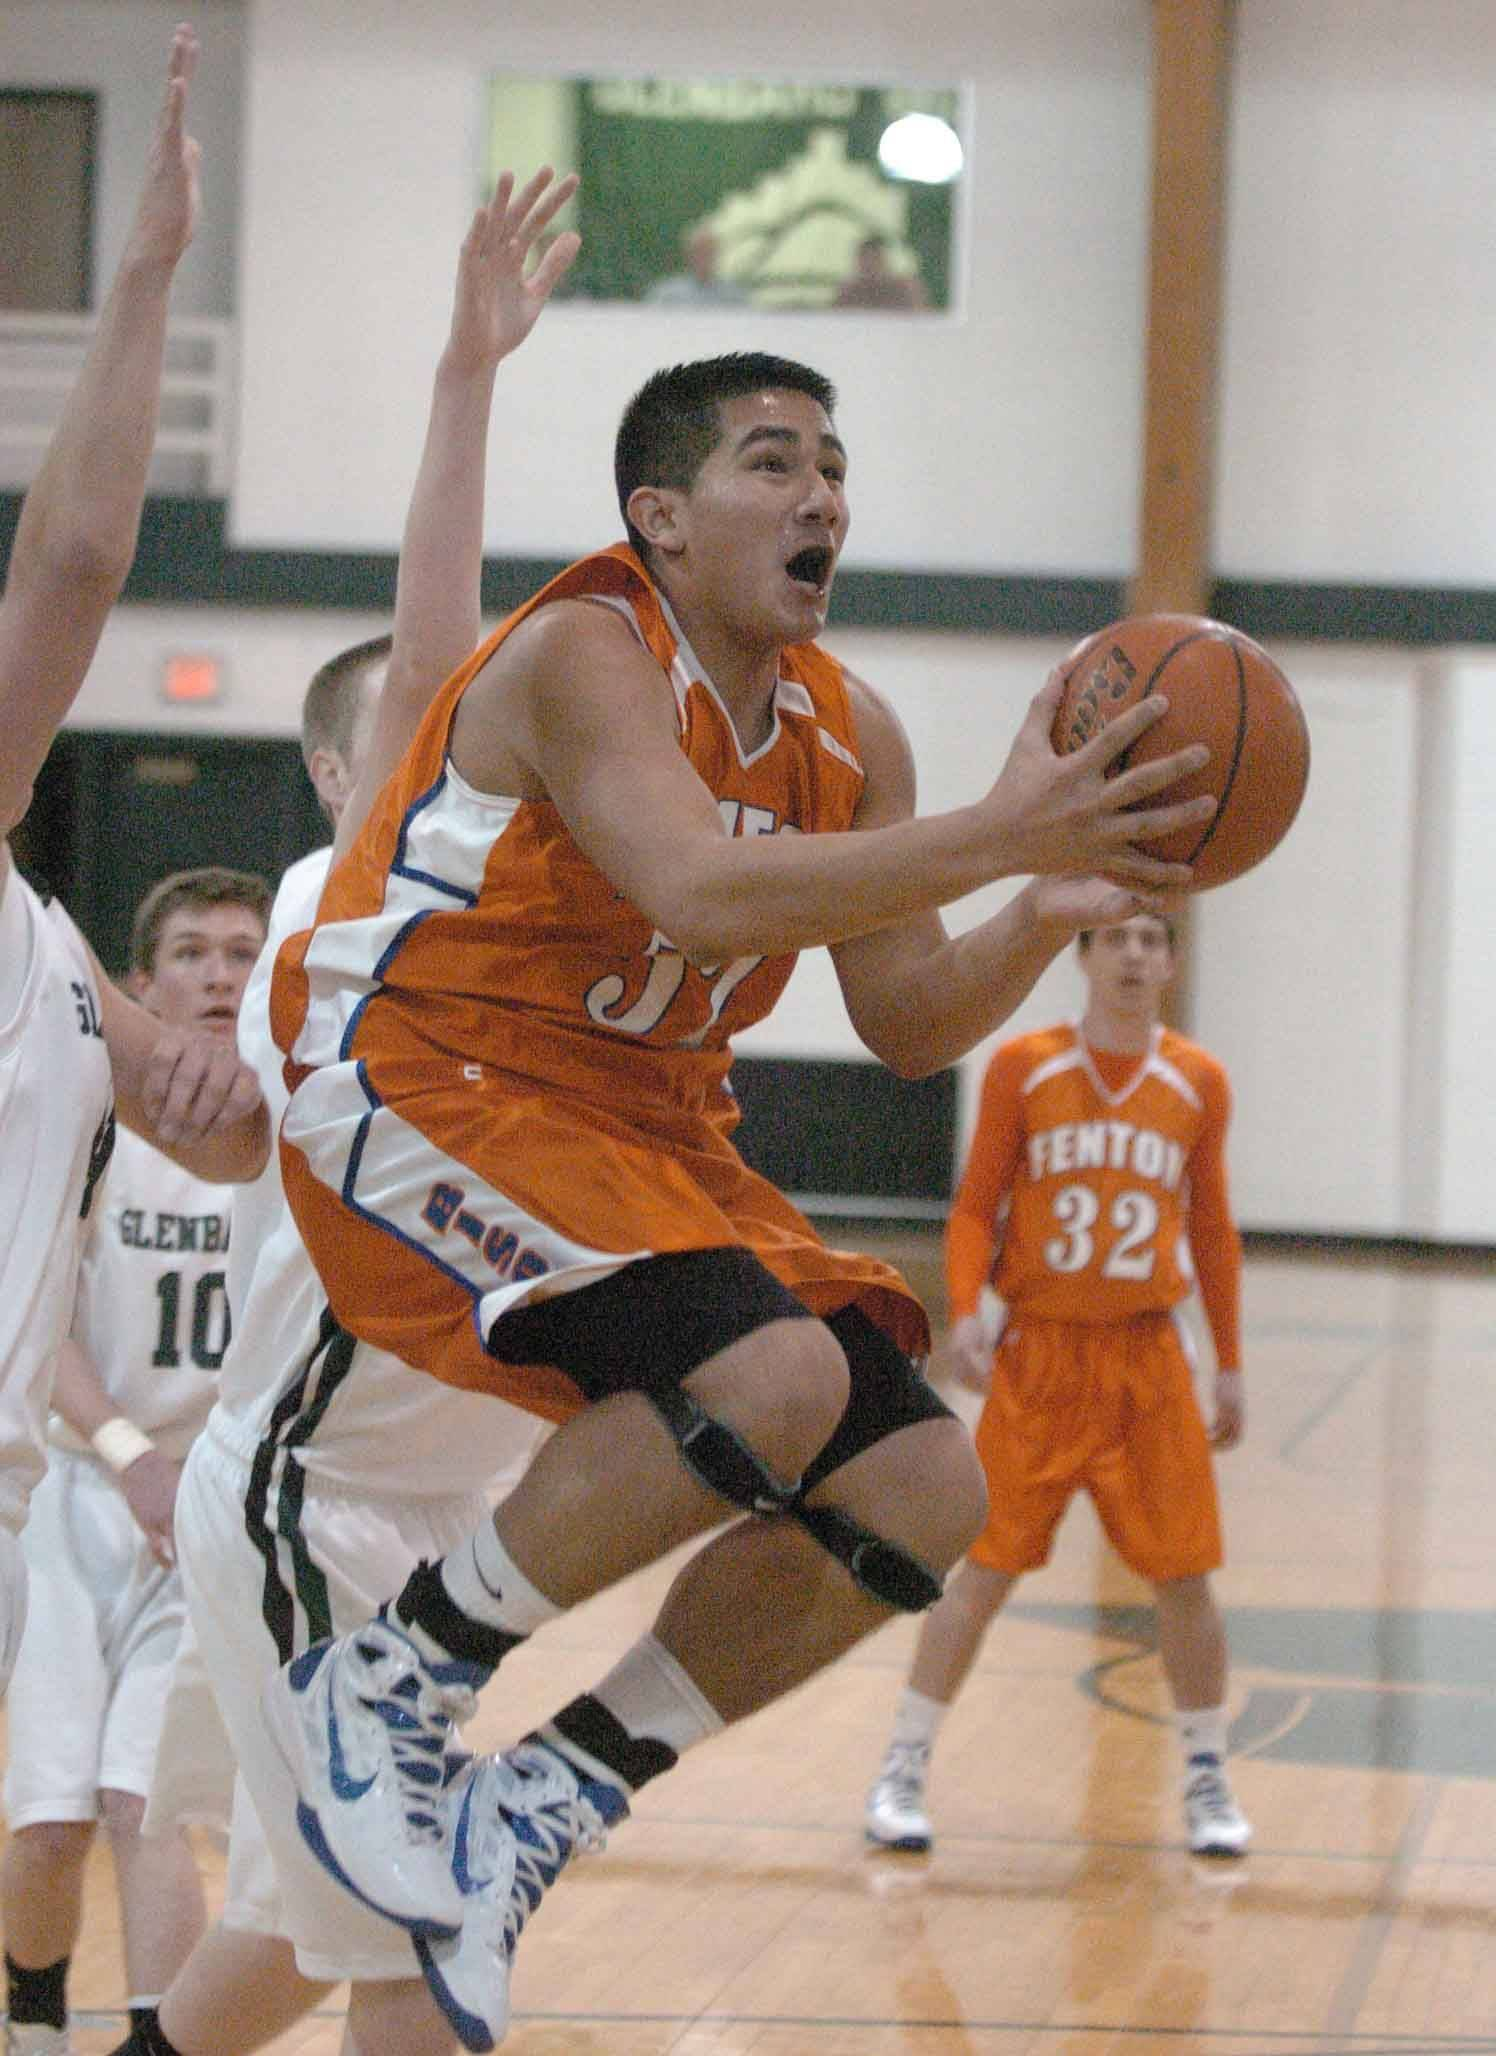 Dan Montano of Fenton takes a shot during the Fenton at Glenbard West boys basketball game Tuesday.